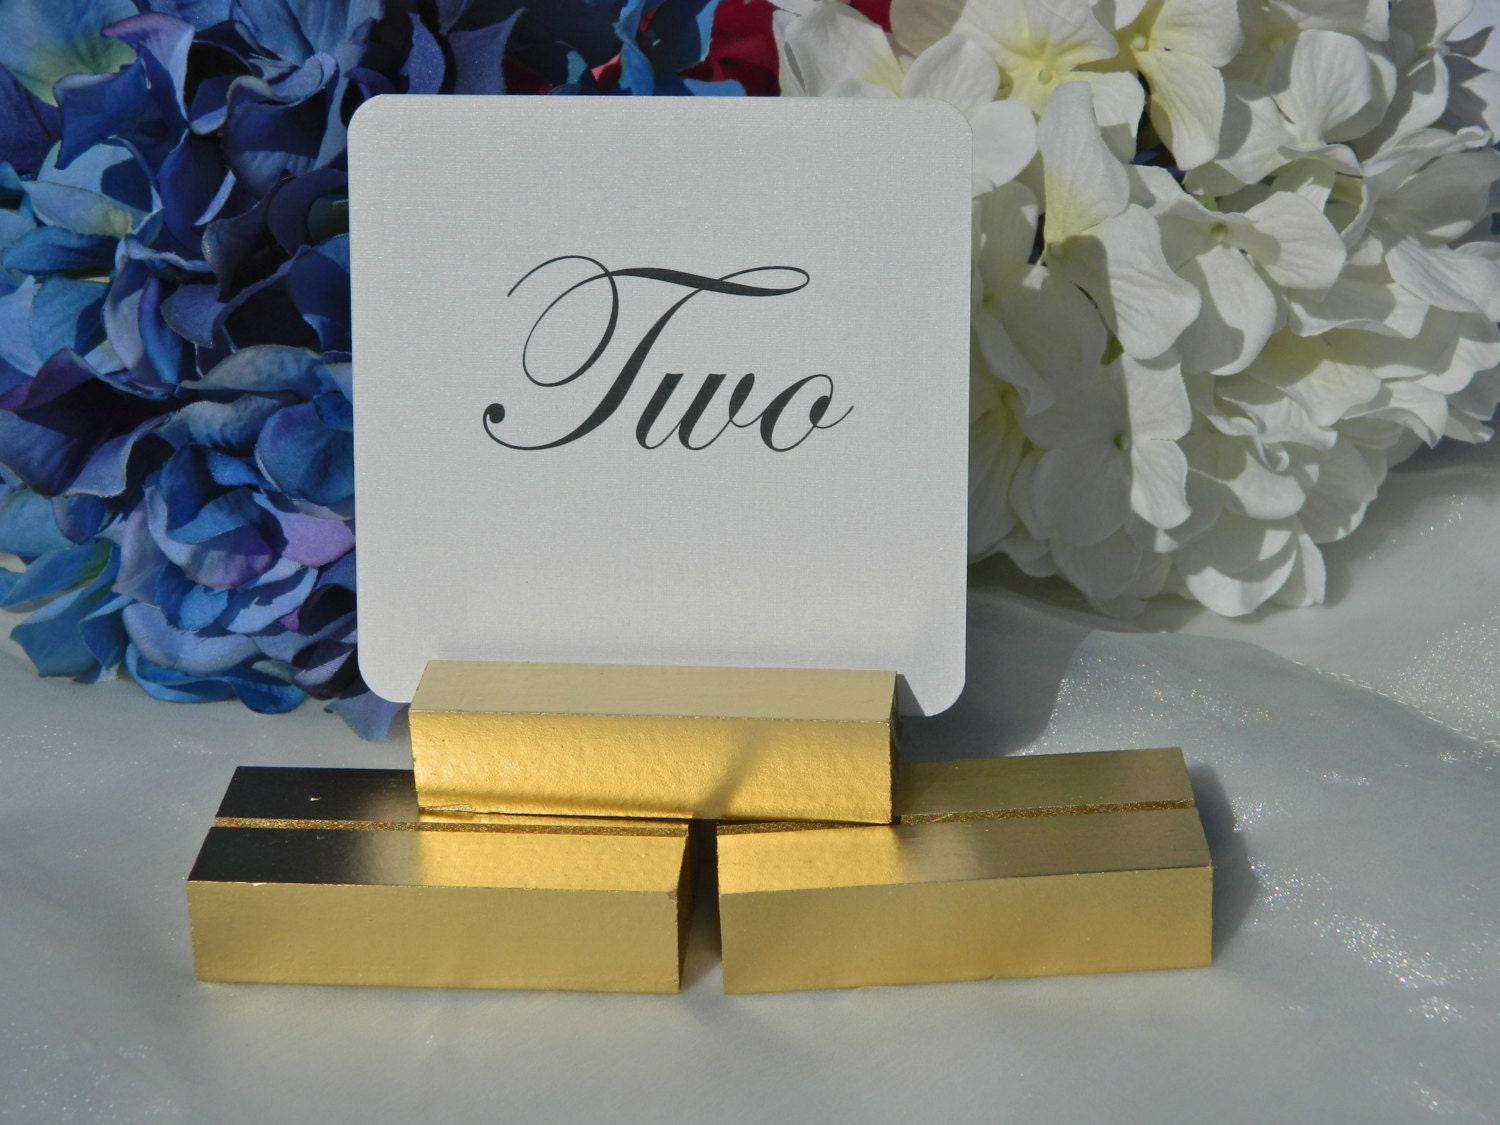 Sale gold wood wedding sign holder table number by gallery360 for Table number holders